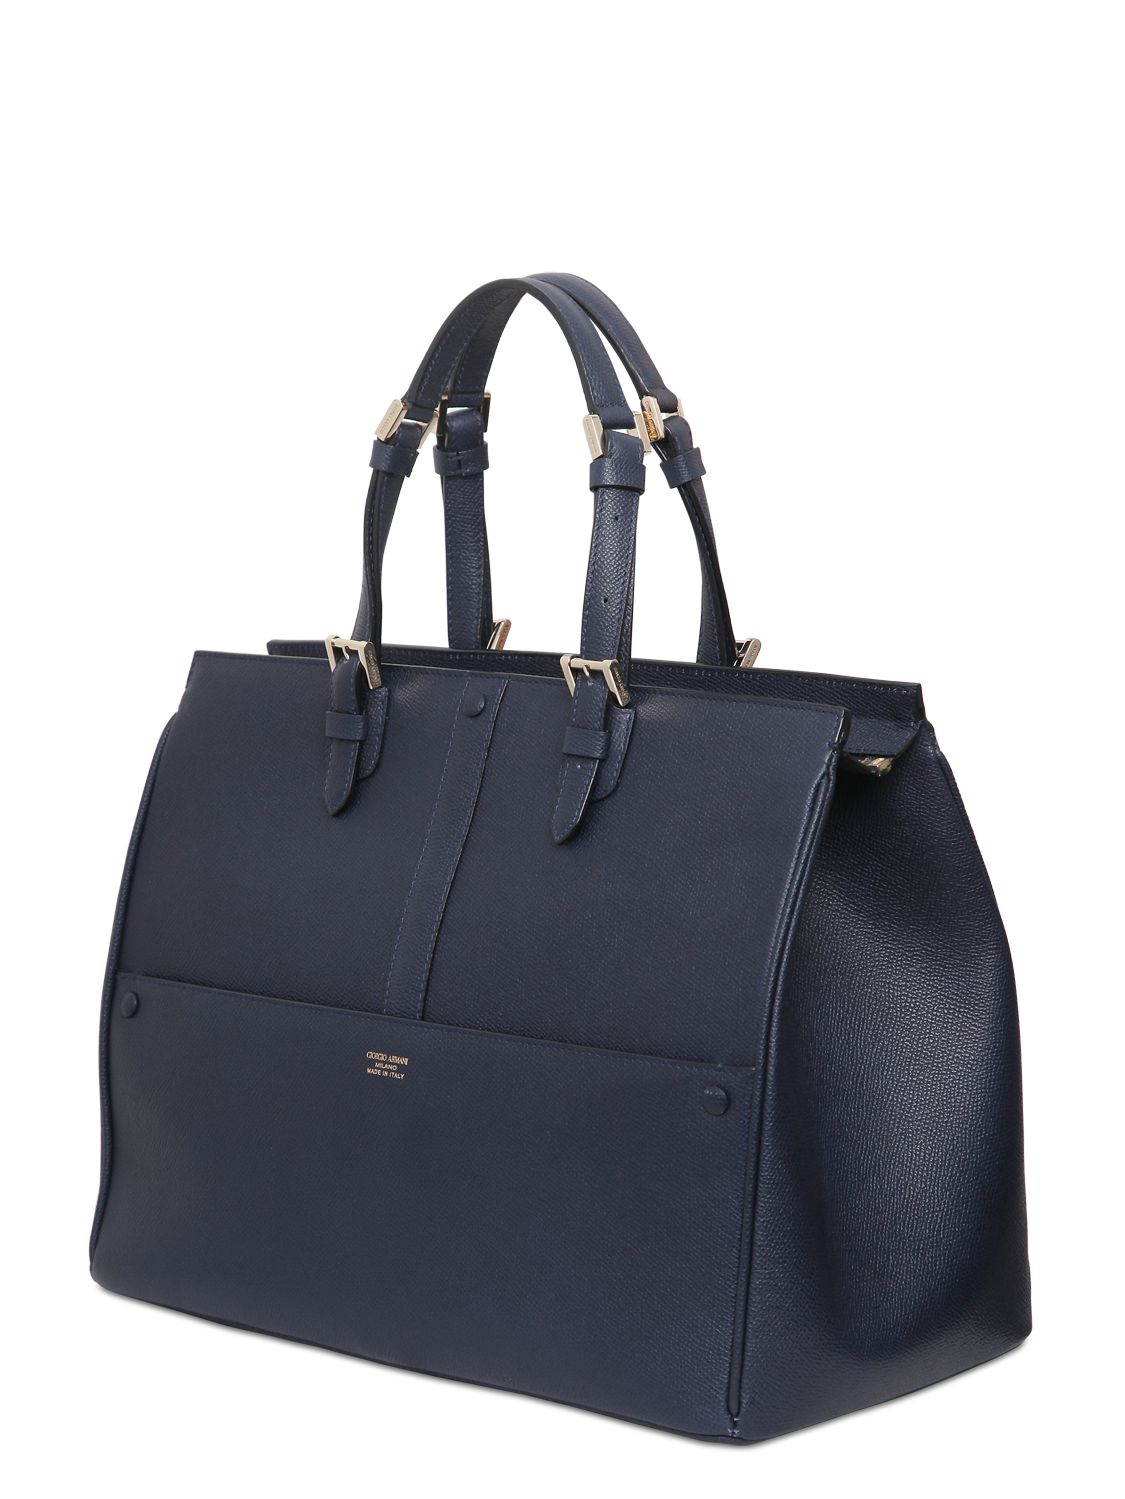 Lyst - Giorgio Armani Weekend Saffiano Leather Top Handle Bag in Blue 264206dc05